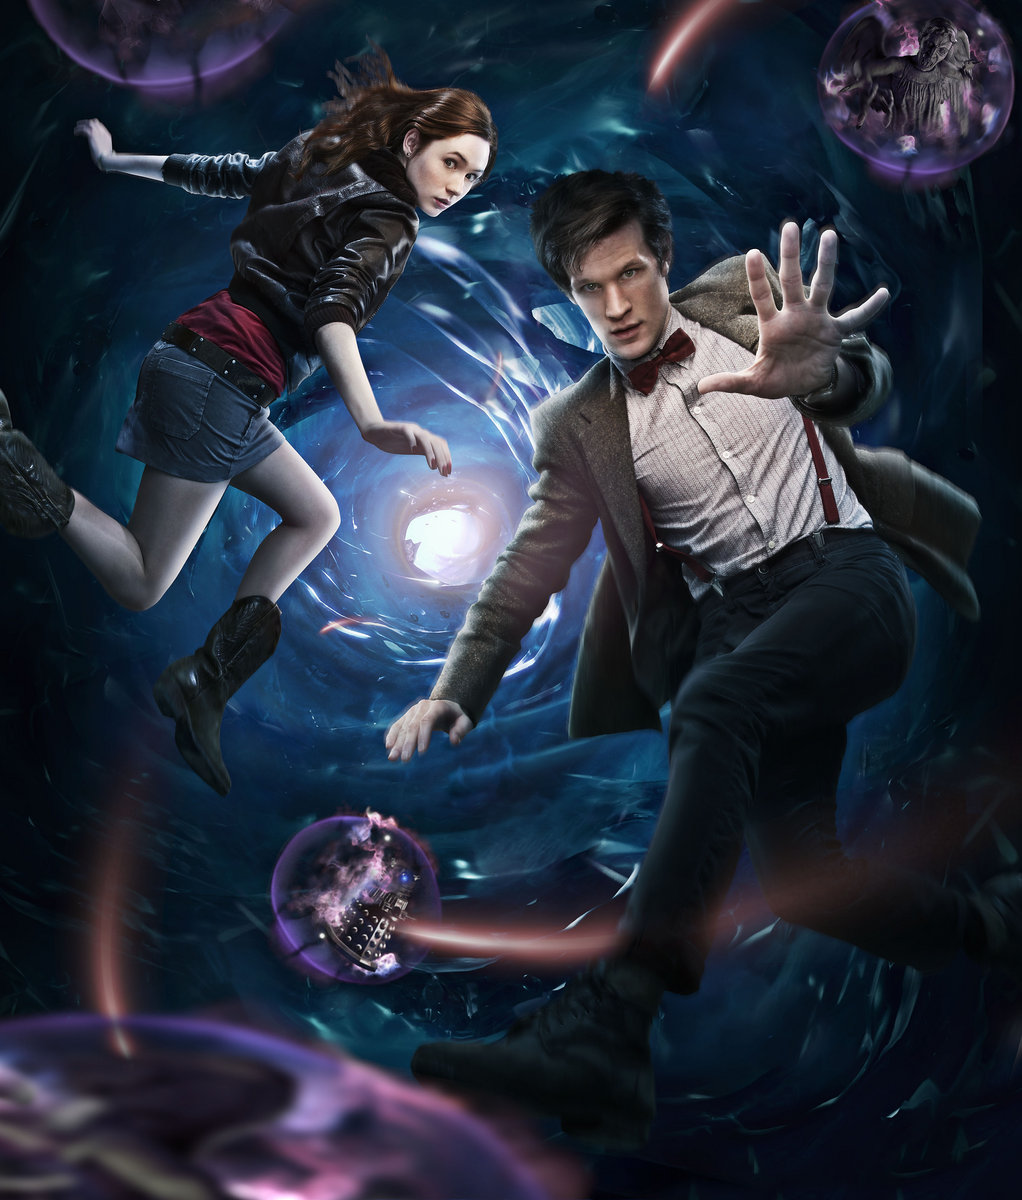 Google themes doctor who - From Doctor Who Series 5 Unoffical Soundtrack By Thetardishub